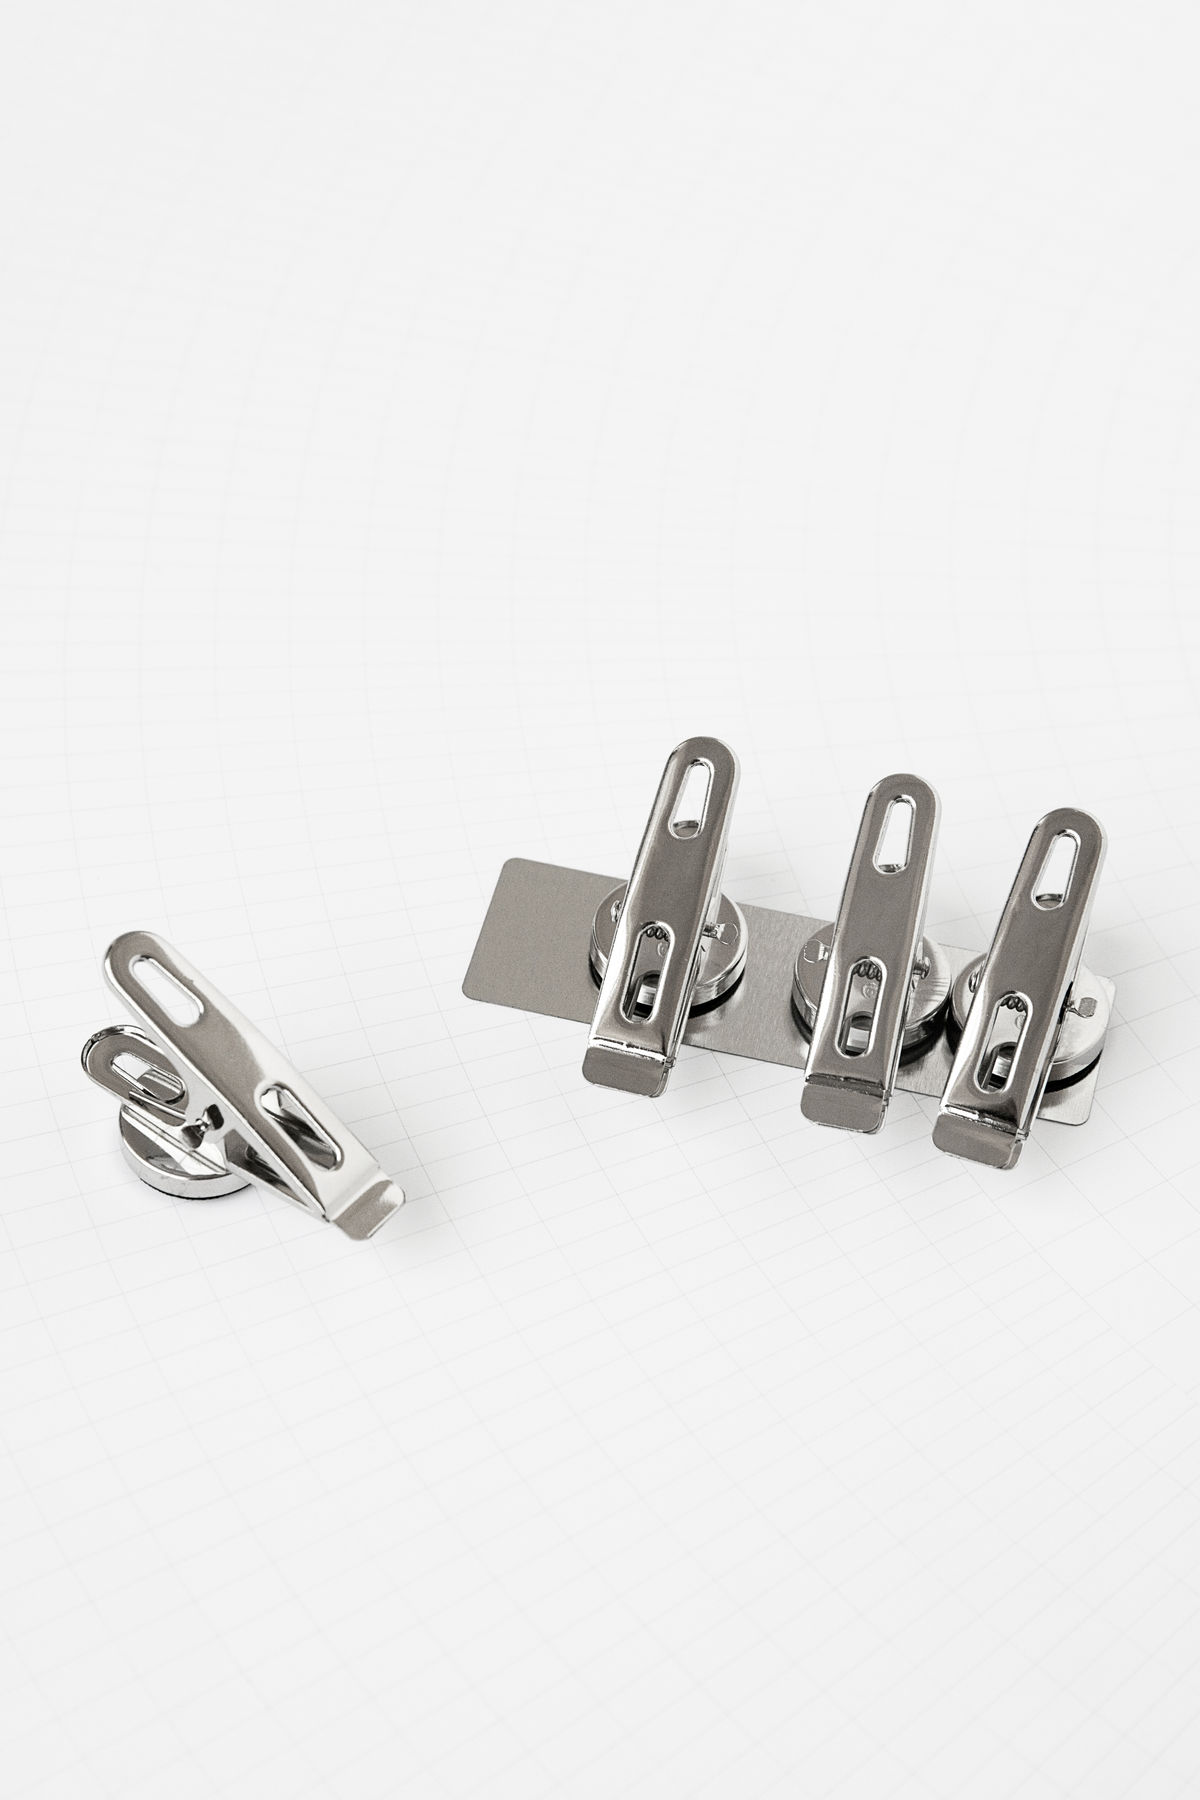 Monograph Magnet Clips